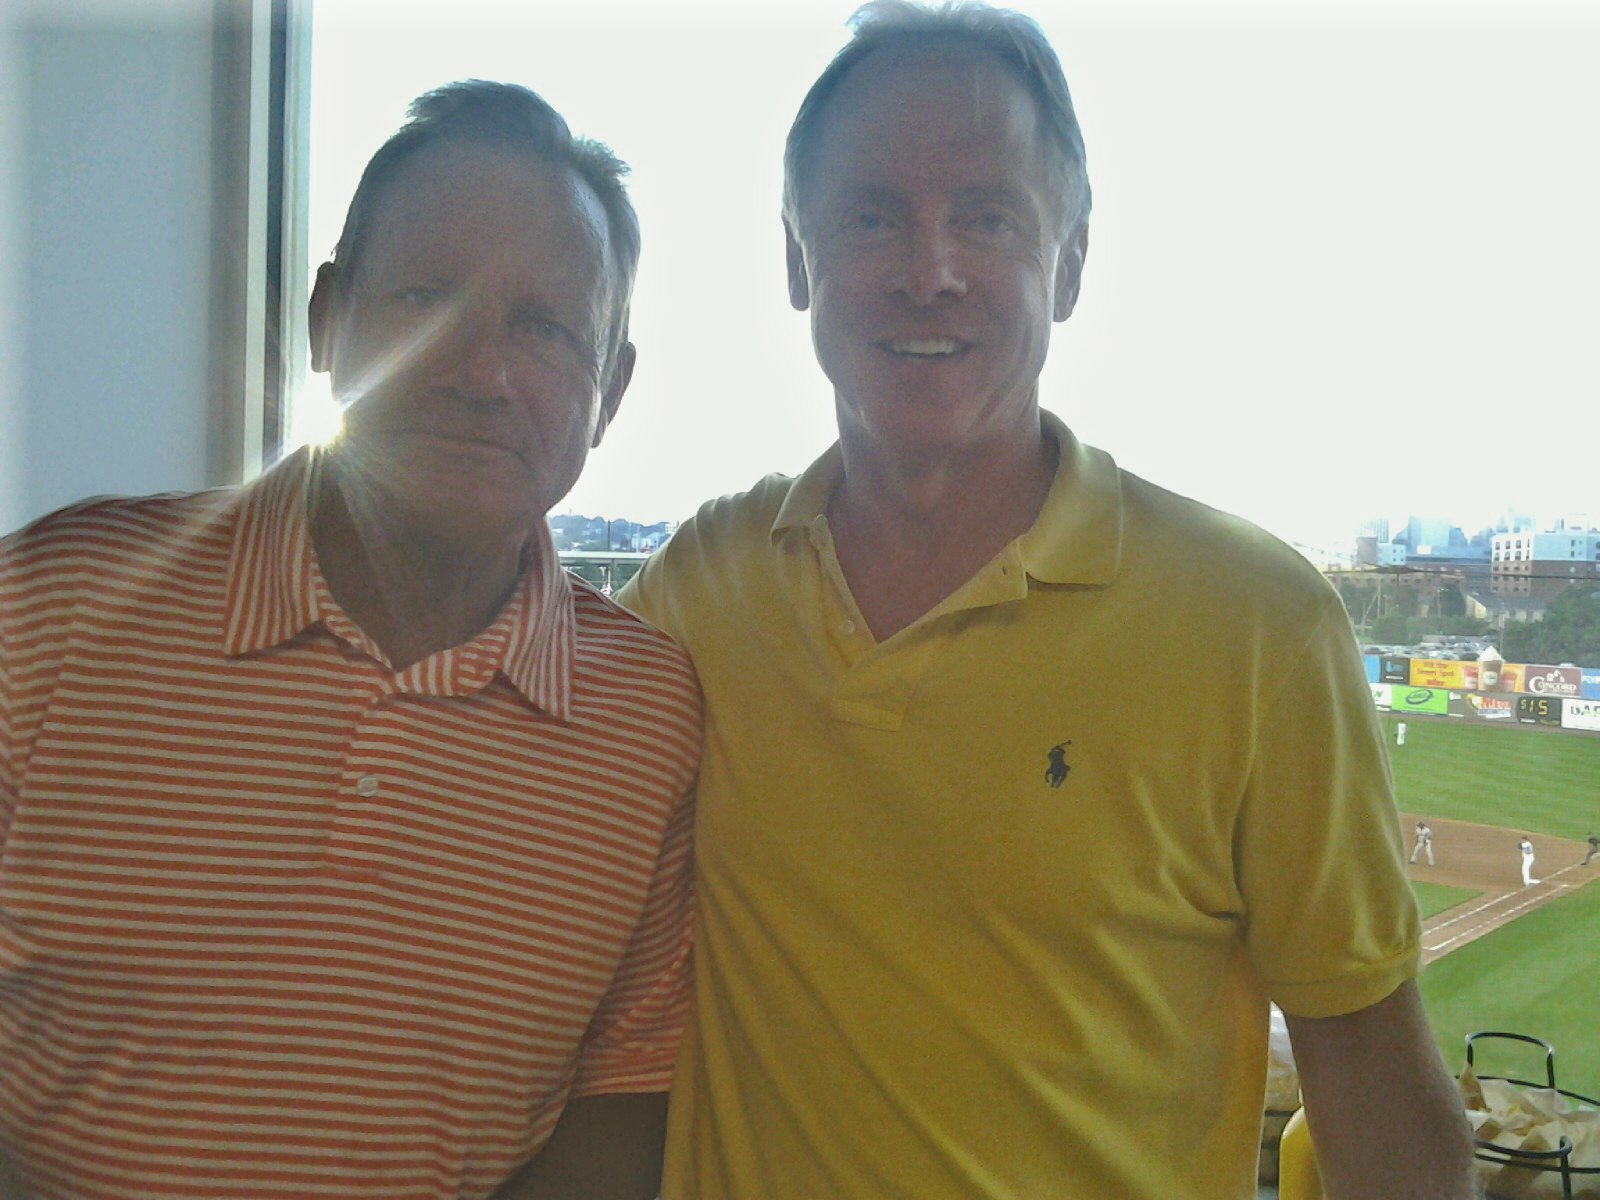 Kansas City Royal legend George Brett at Blue Rocks Stadium